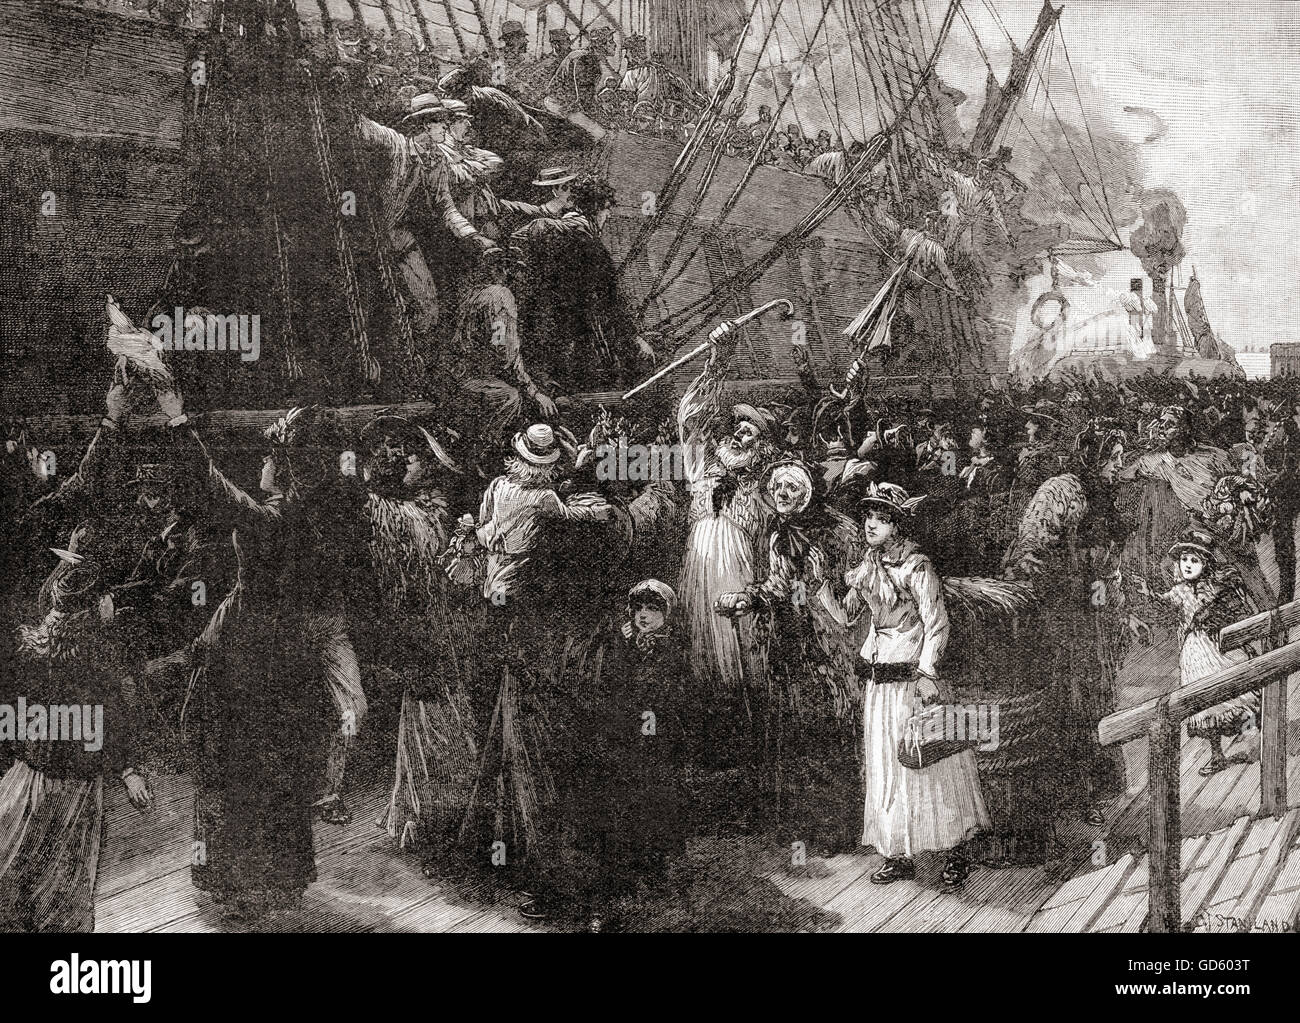 On board an emigrant ship in the 19th century. - Stock Image